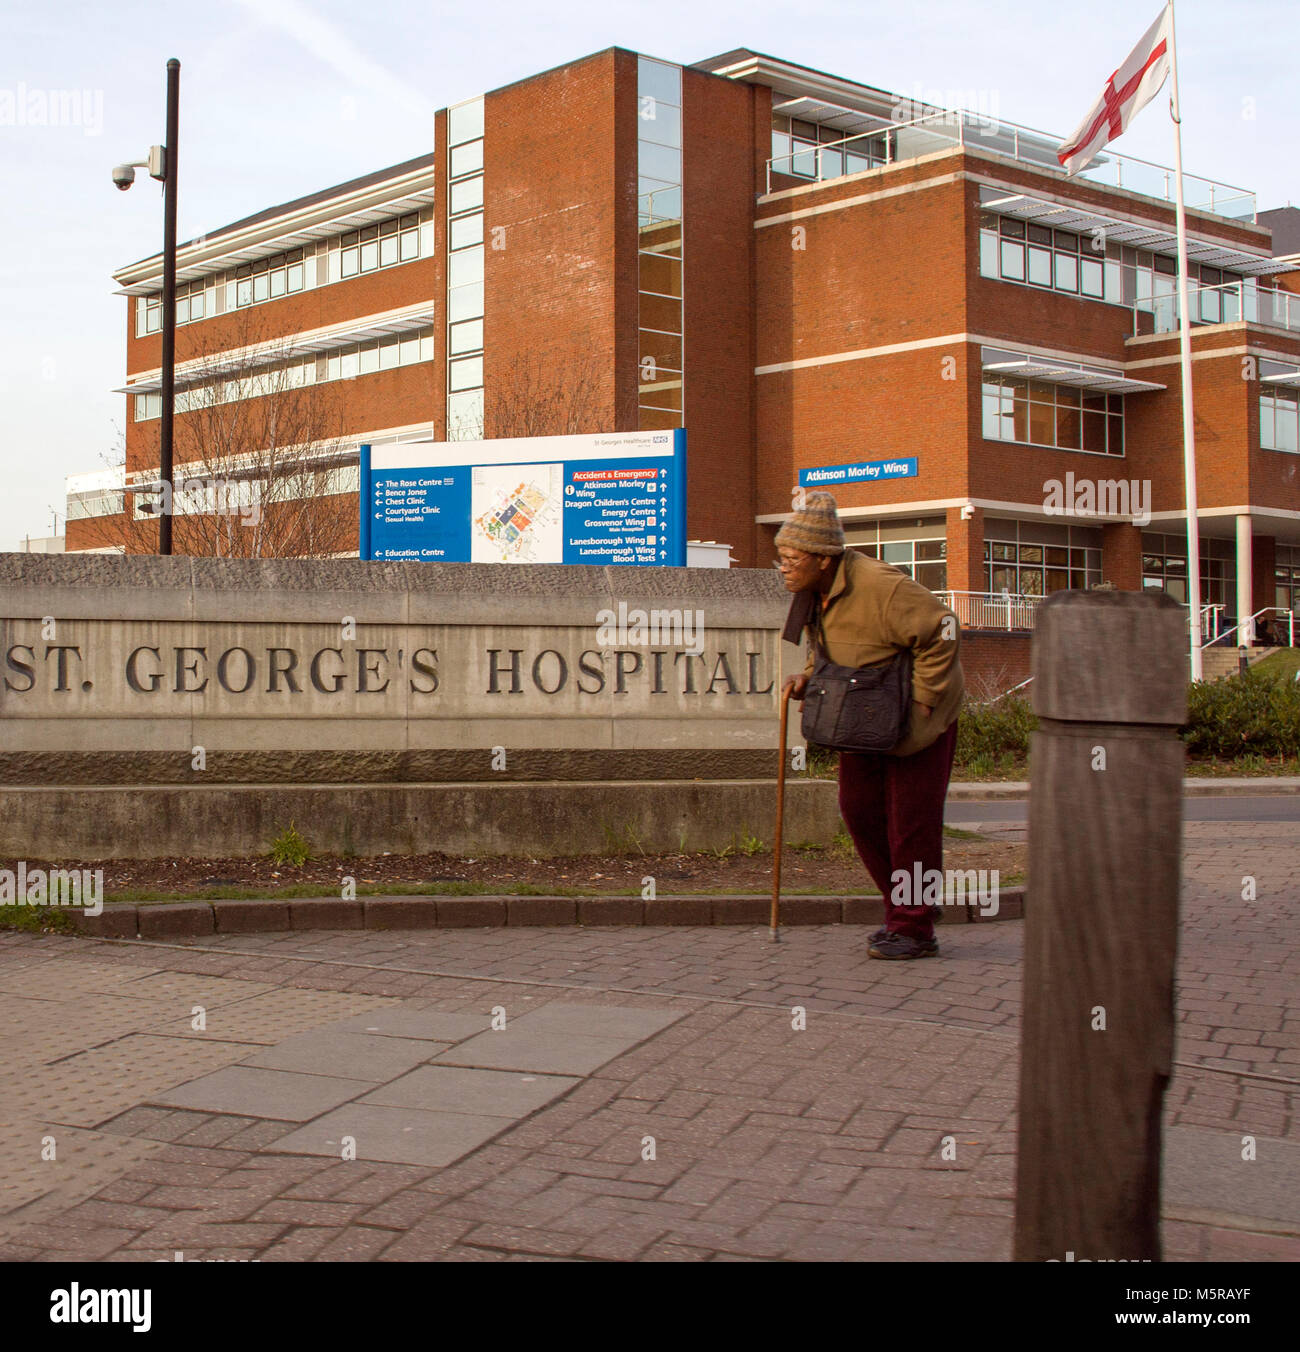 Colour Photograph of St Georges Hospital, Tooting, London, England, UK. Credit: London Snapper Stock Photo